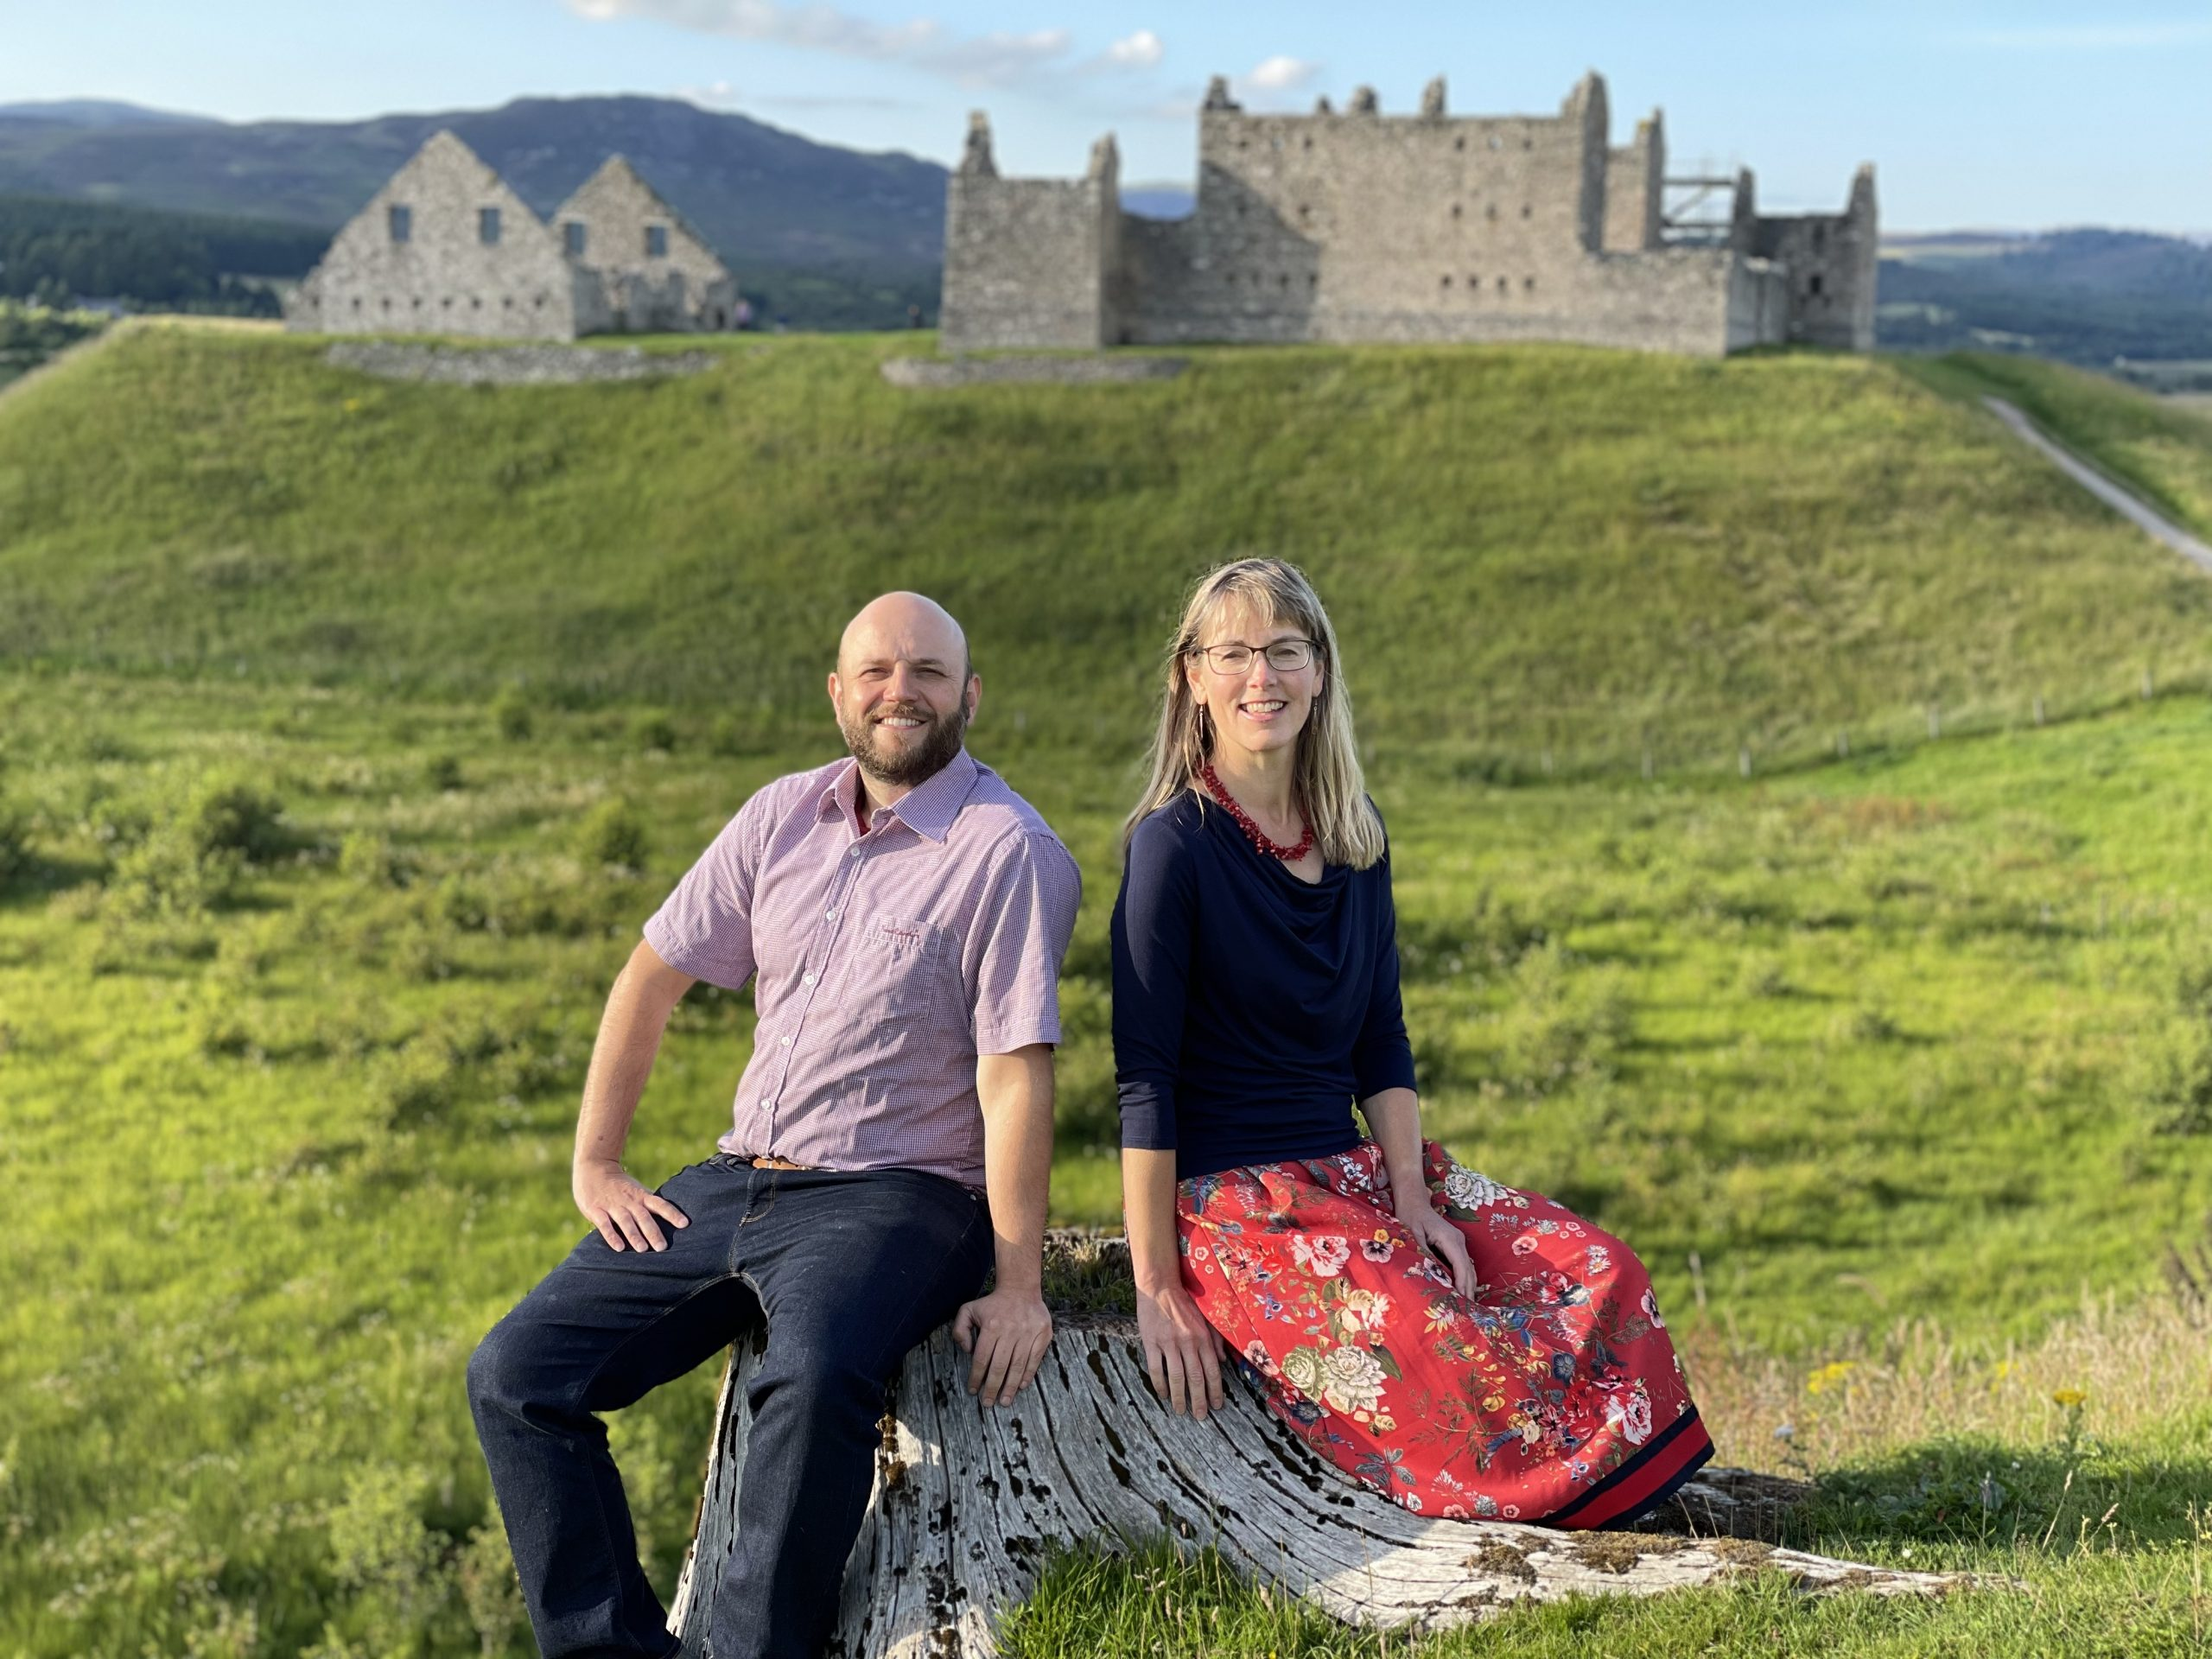 Hamish Napier and Merryn Glover in front of Ruthven Barracks